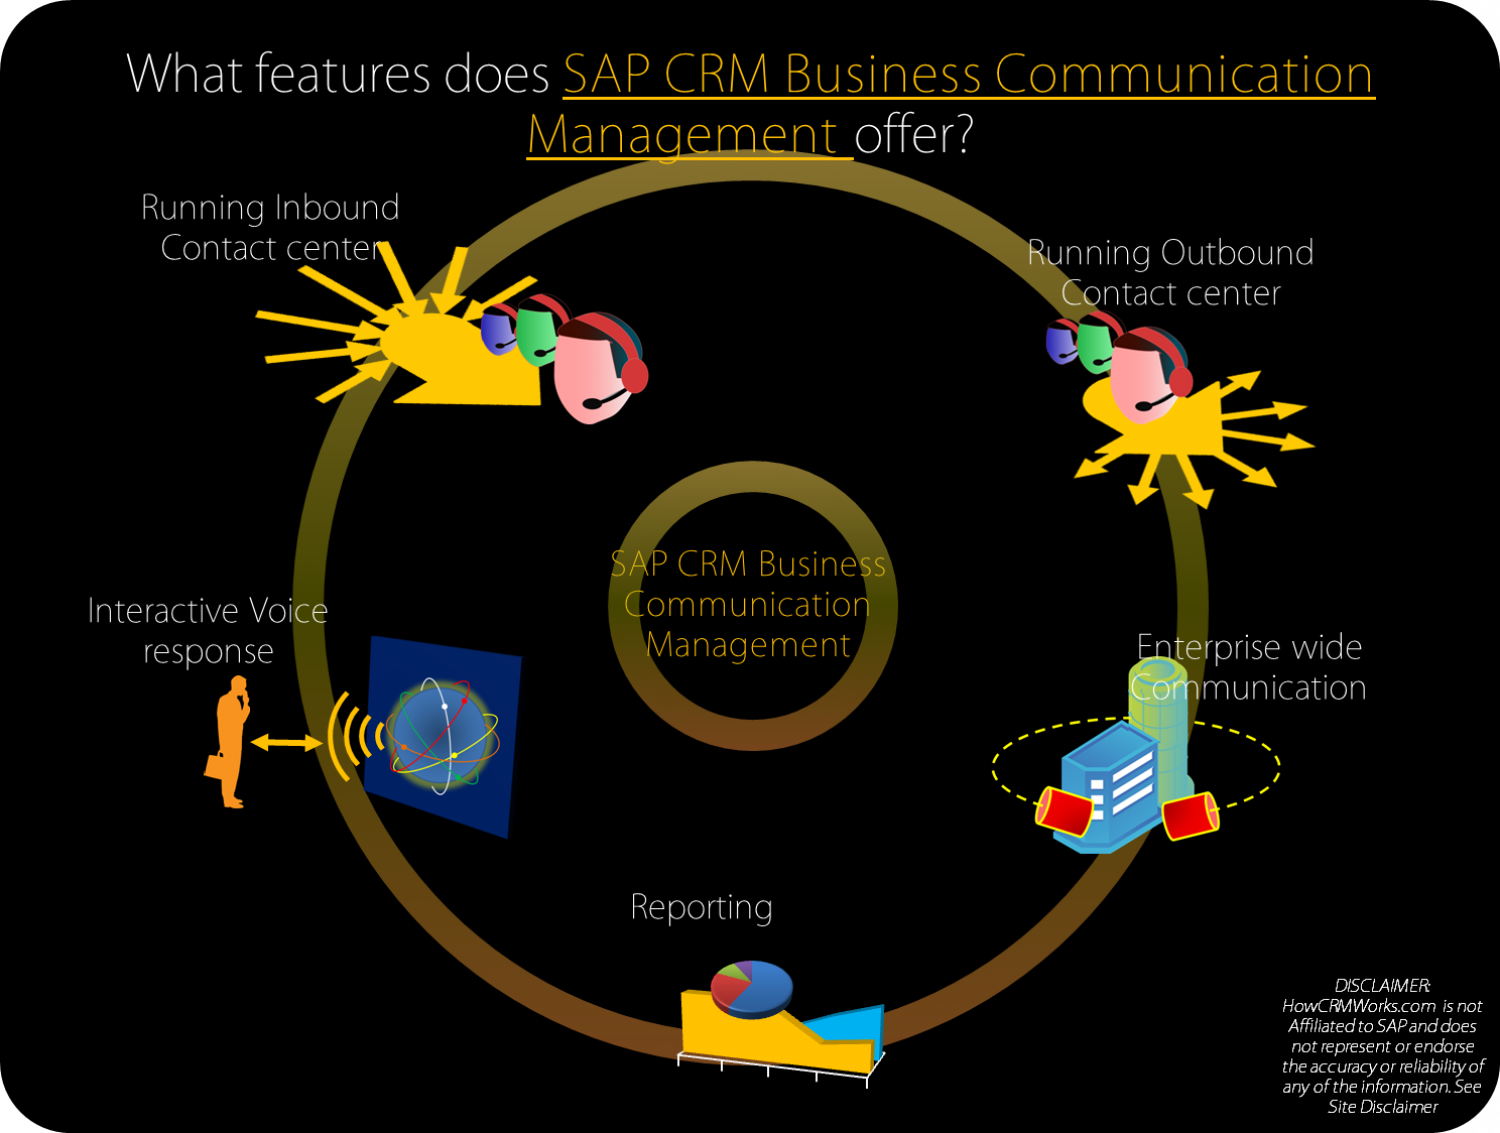 SAP CRM Business Communication Management Infographic